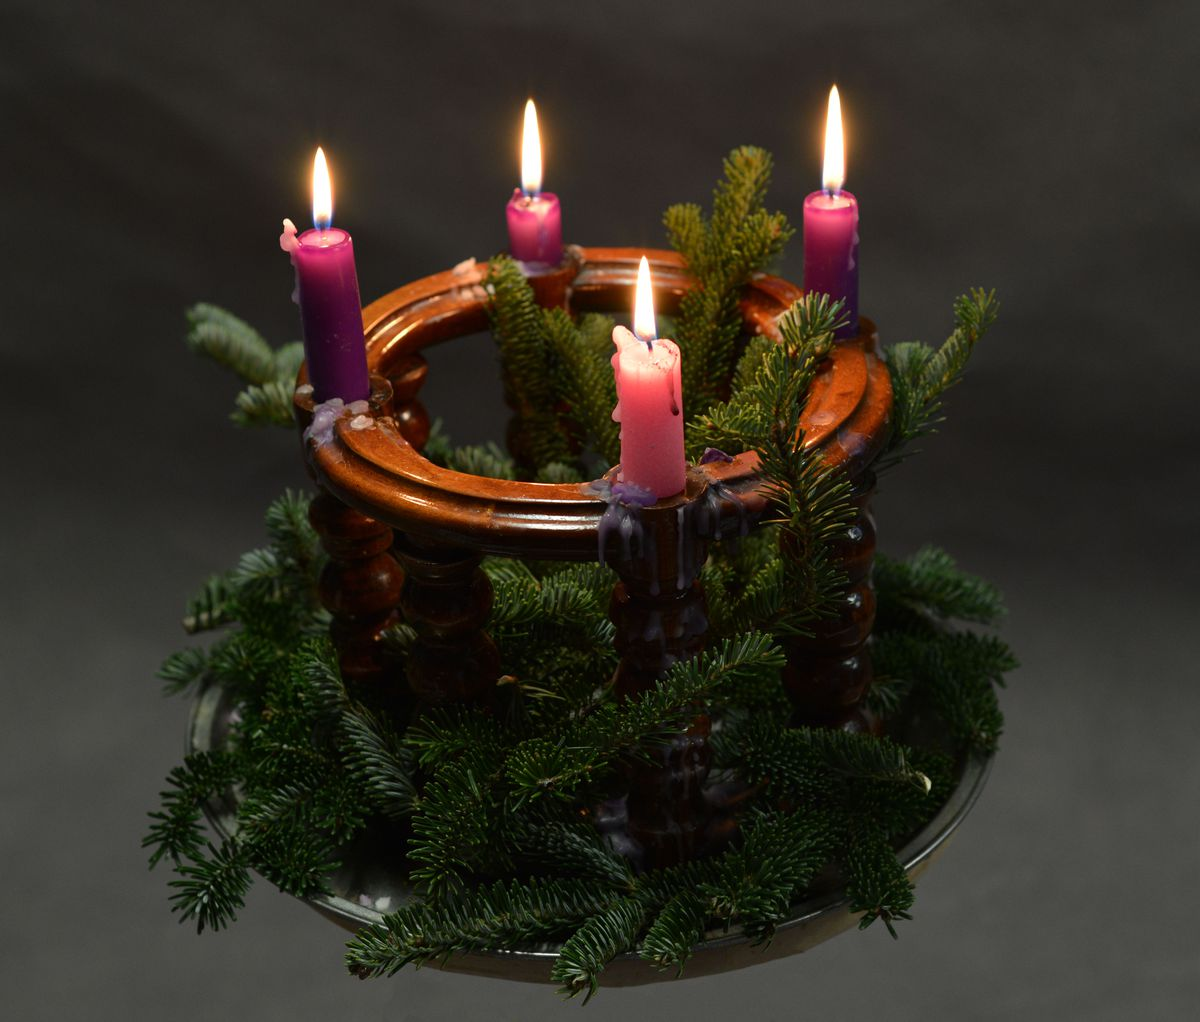 A typical Advent wreath.